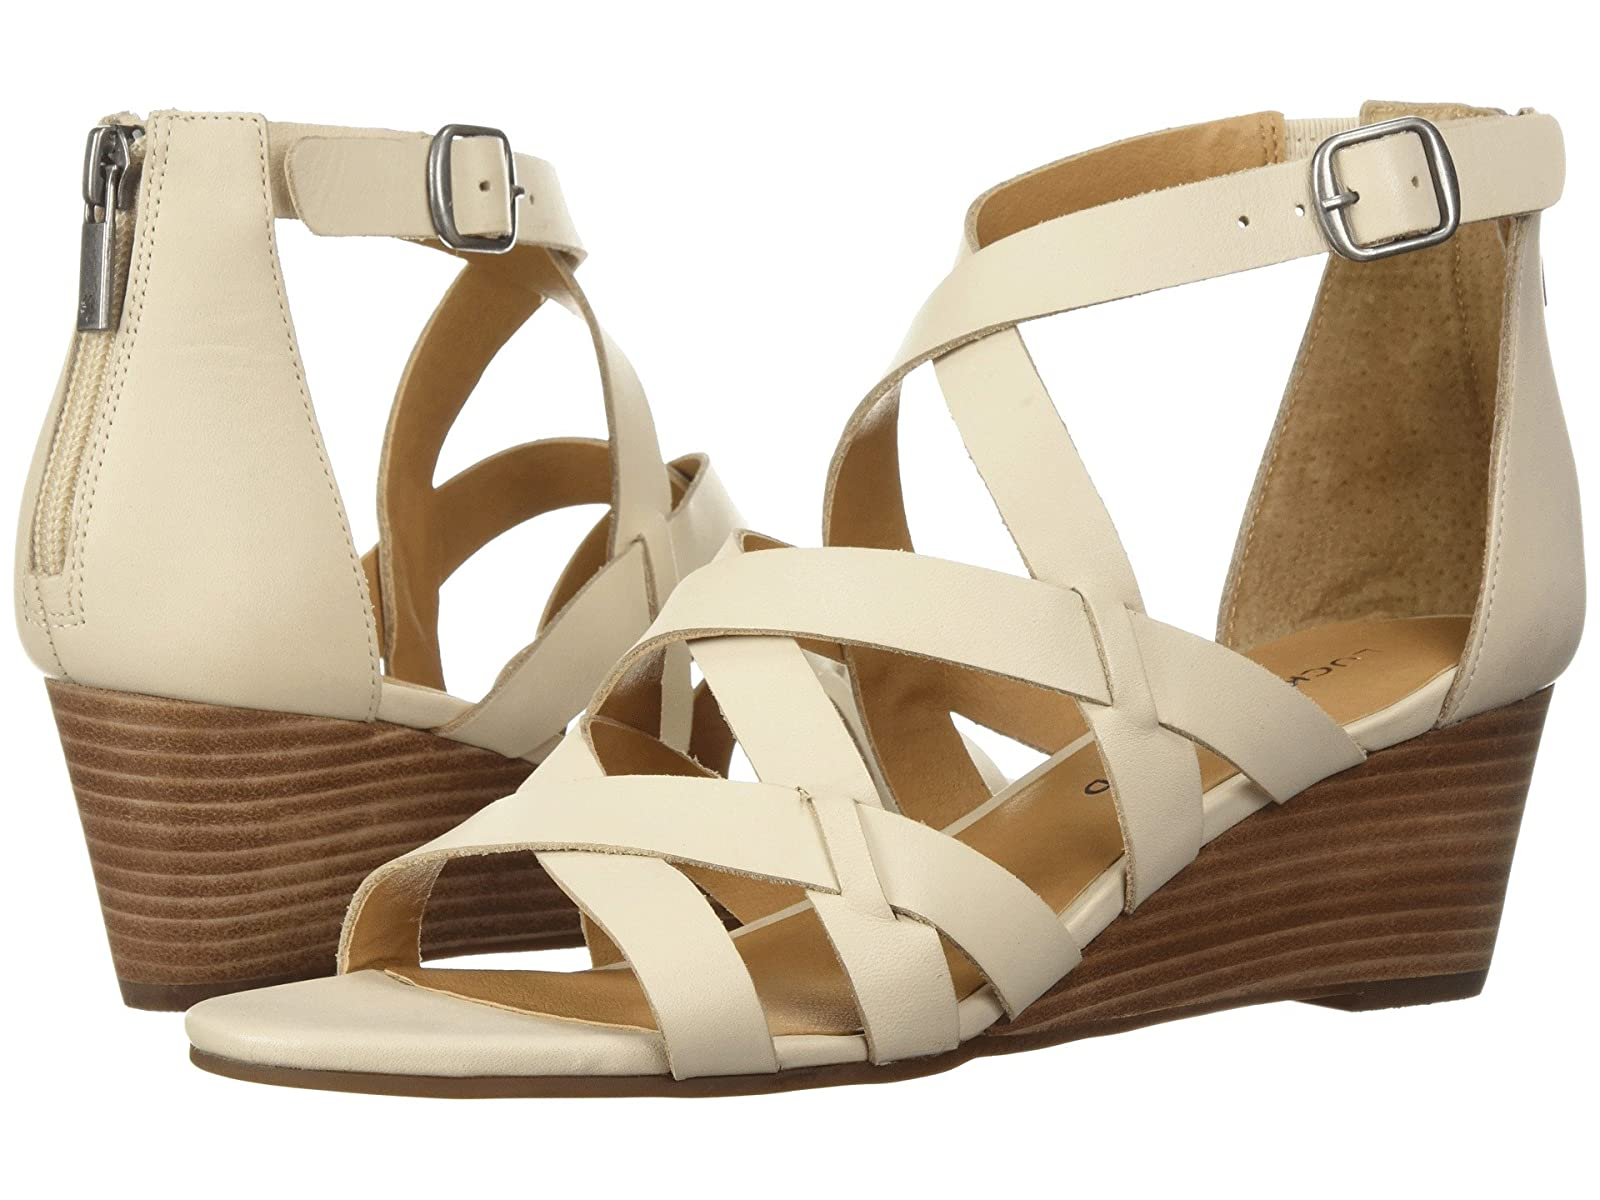 Lucky Brand JeweliaCheap and distinctive eye-catching shoes